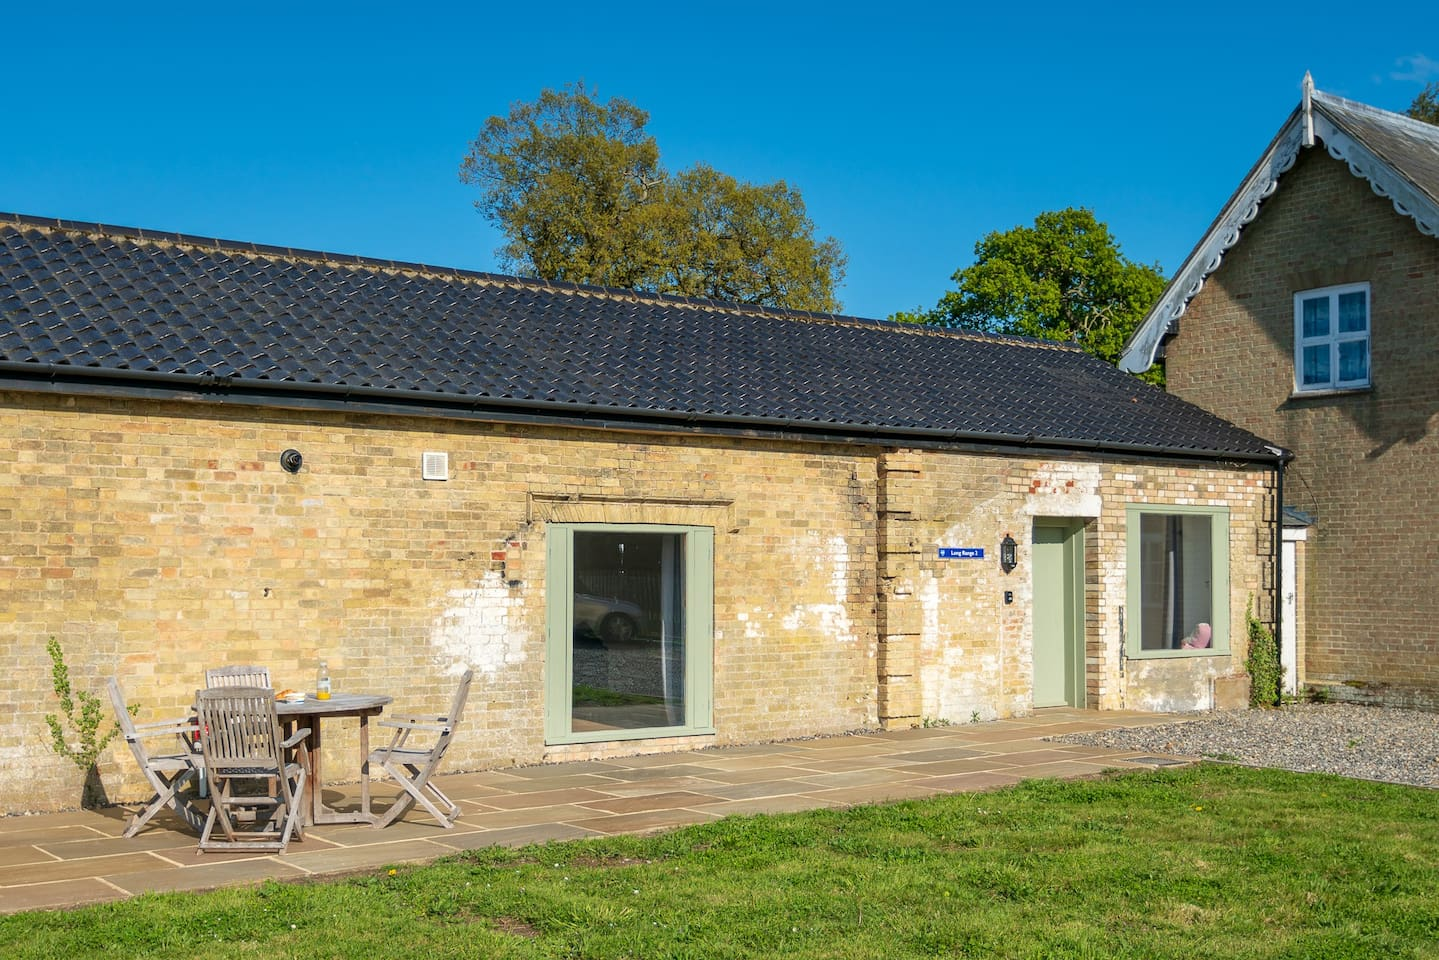 Long Range 2 is a newly renovated cottage on the historic Henham Park estate near Southwold